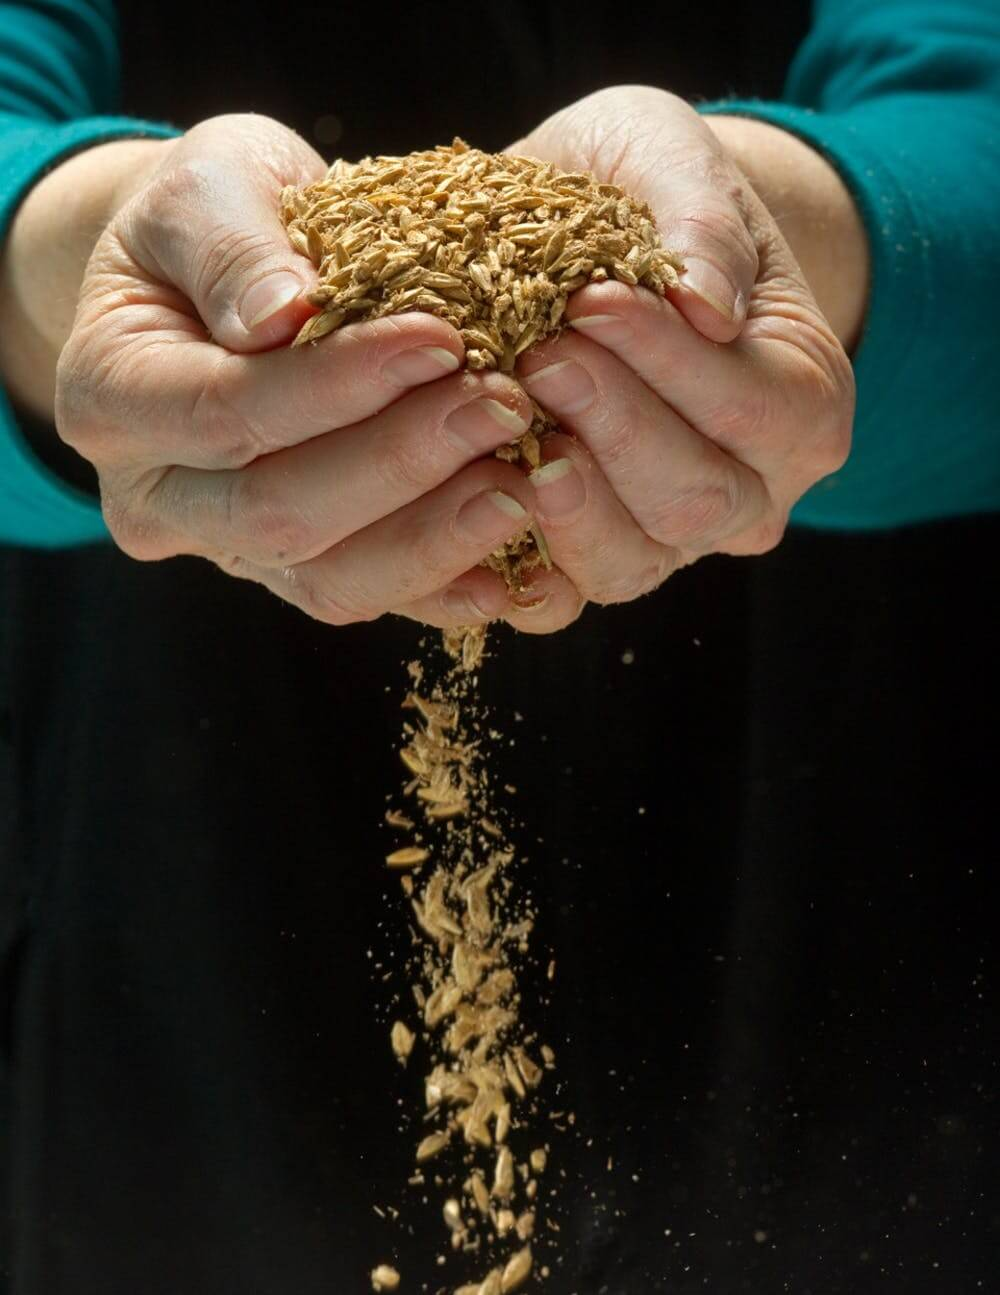 Dr. Peggy Lemaux, holding seeds from the hypoallergenic wheat she helped develop with genetic engineering. James Block, CC BY-SA